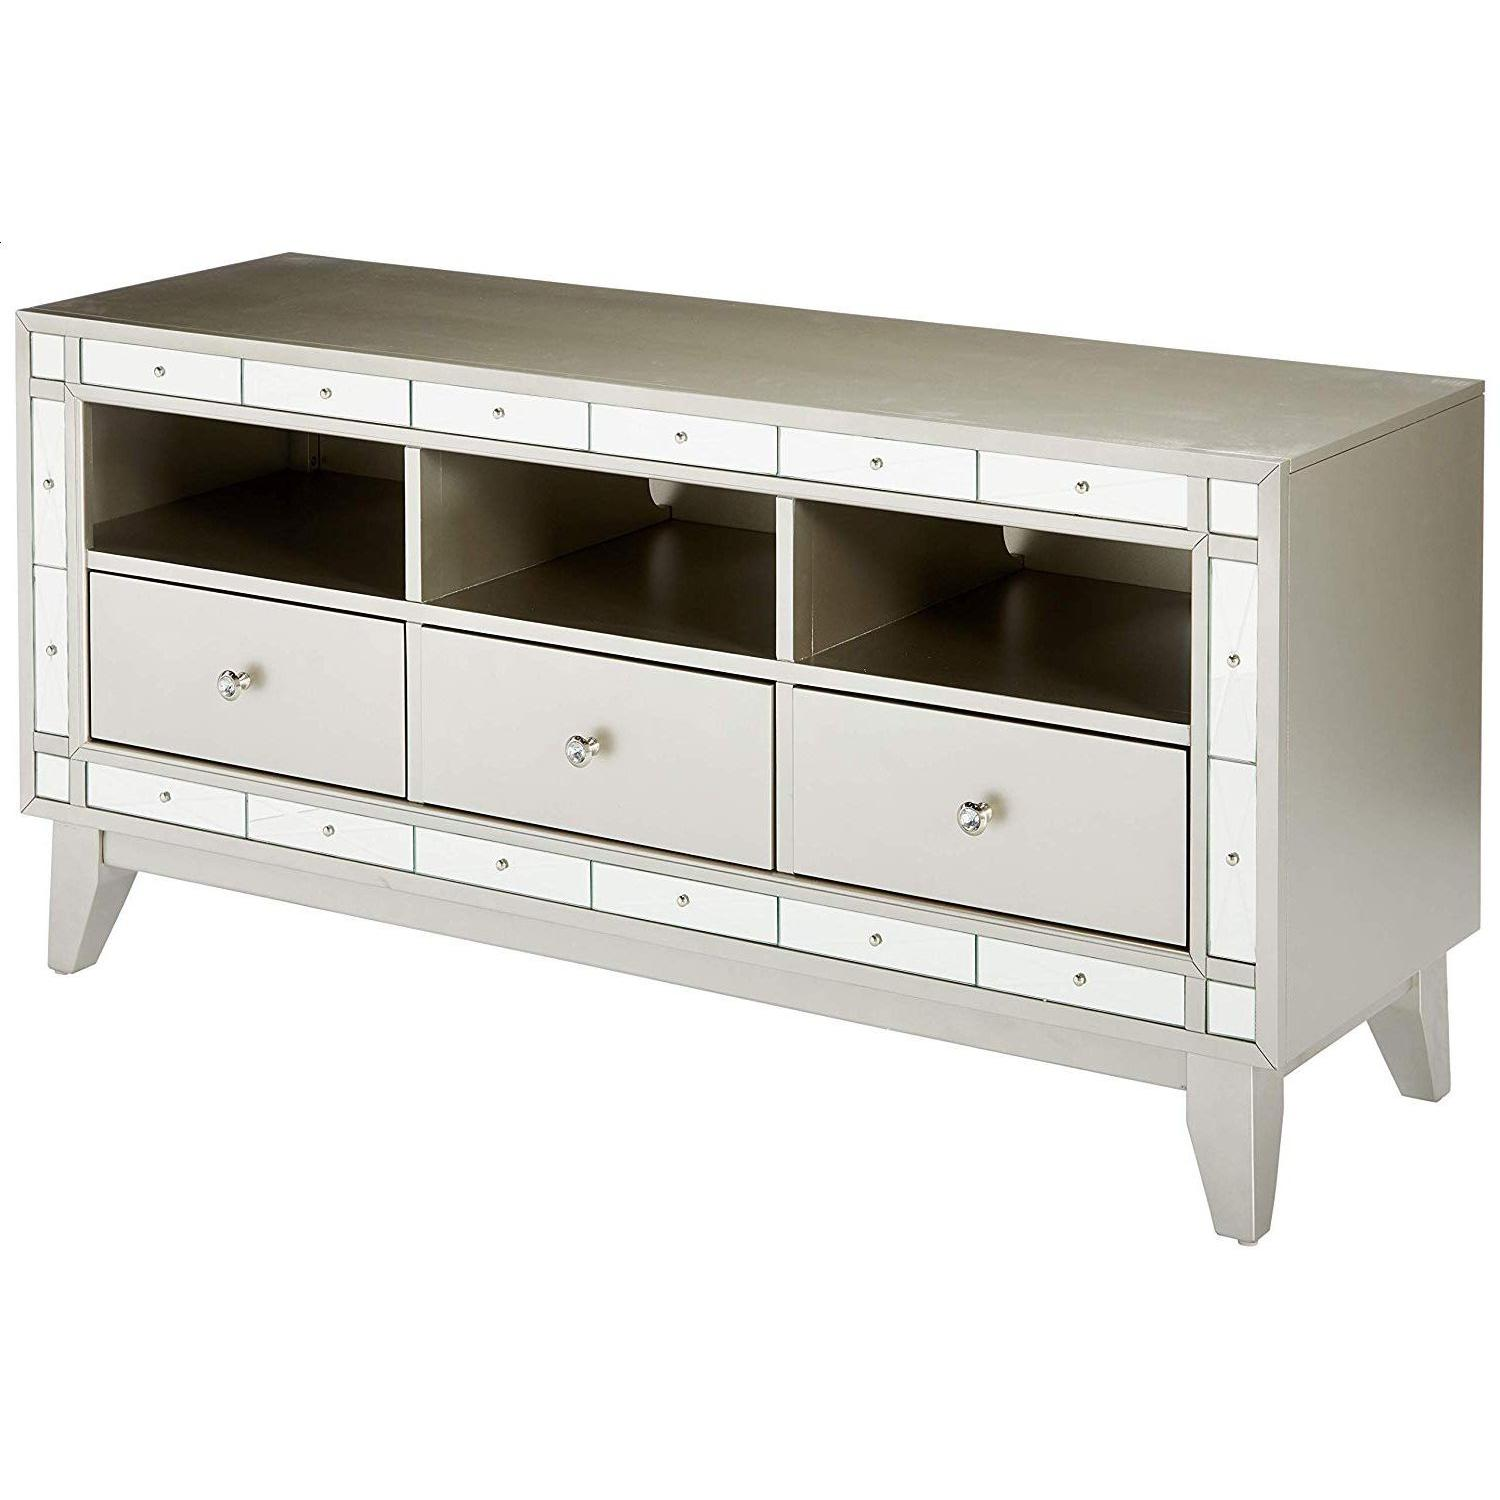 Glam Style TV Console w/ Mirror Accent - image-3